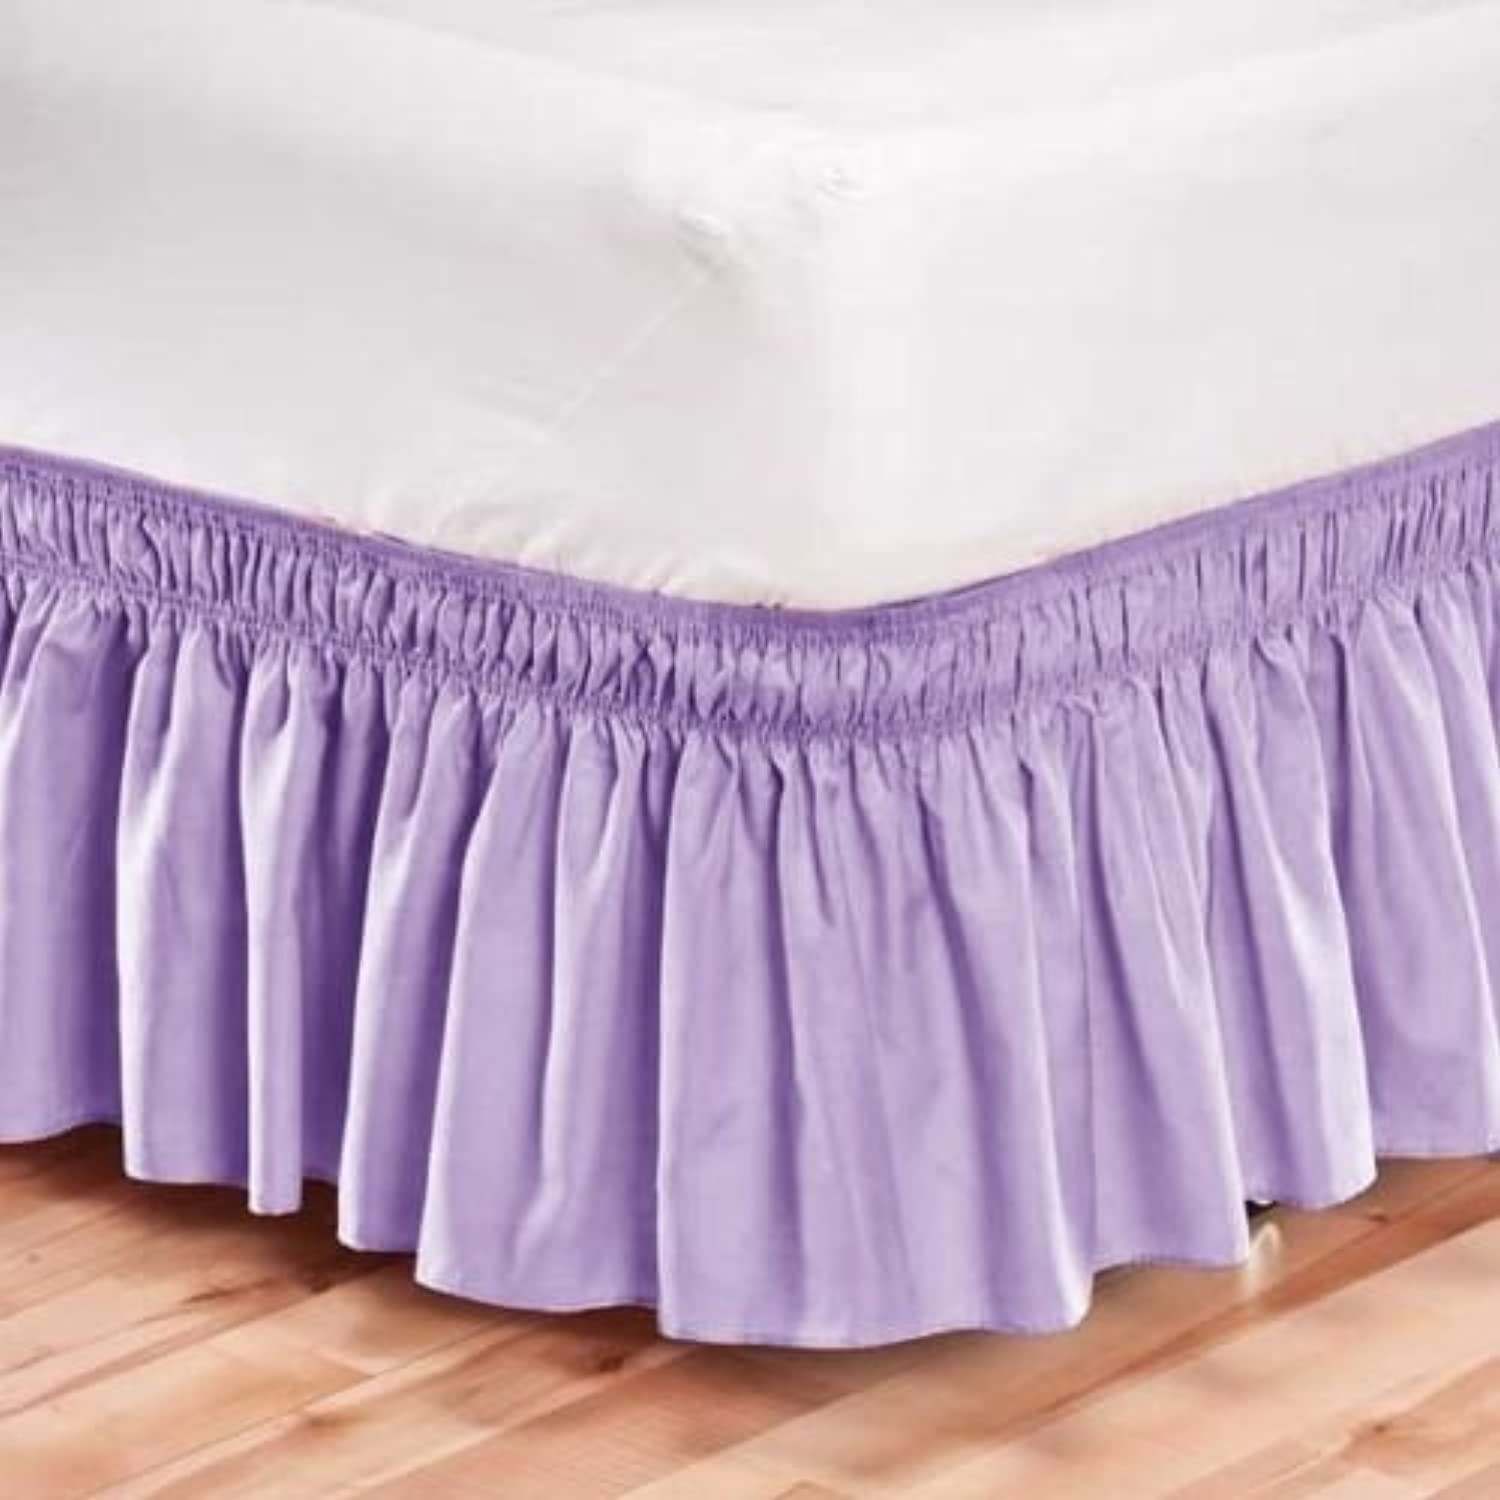 Bed skirts keep the dust bunnies at bay! Shop thrushop-06mq49hz.ga for bedskirts and dust ruffles designed to make each bedroom beautiful.